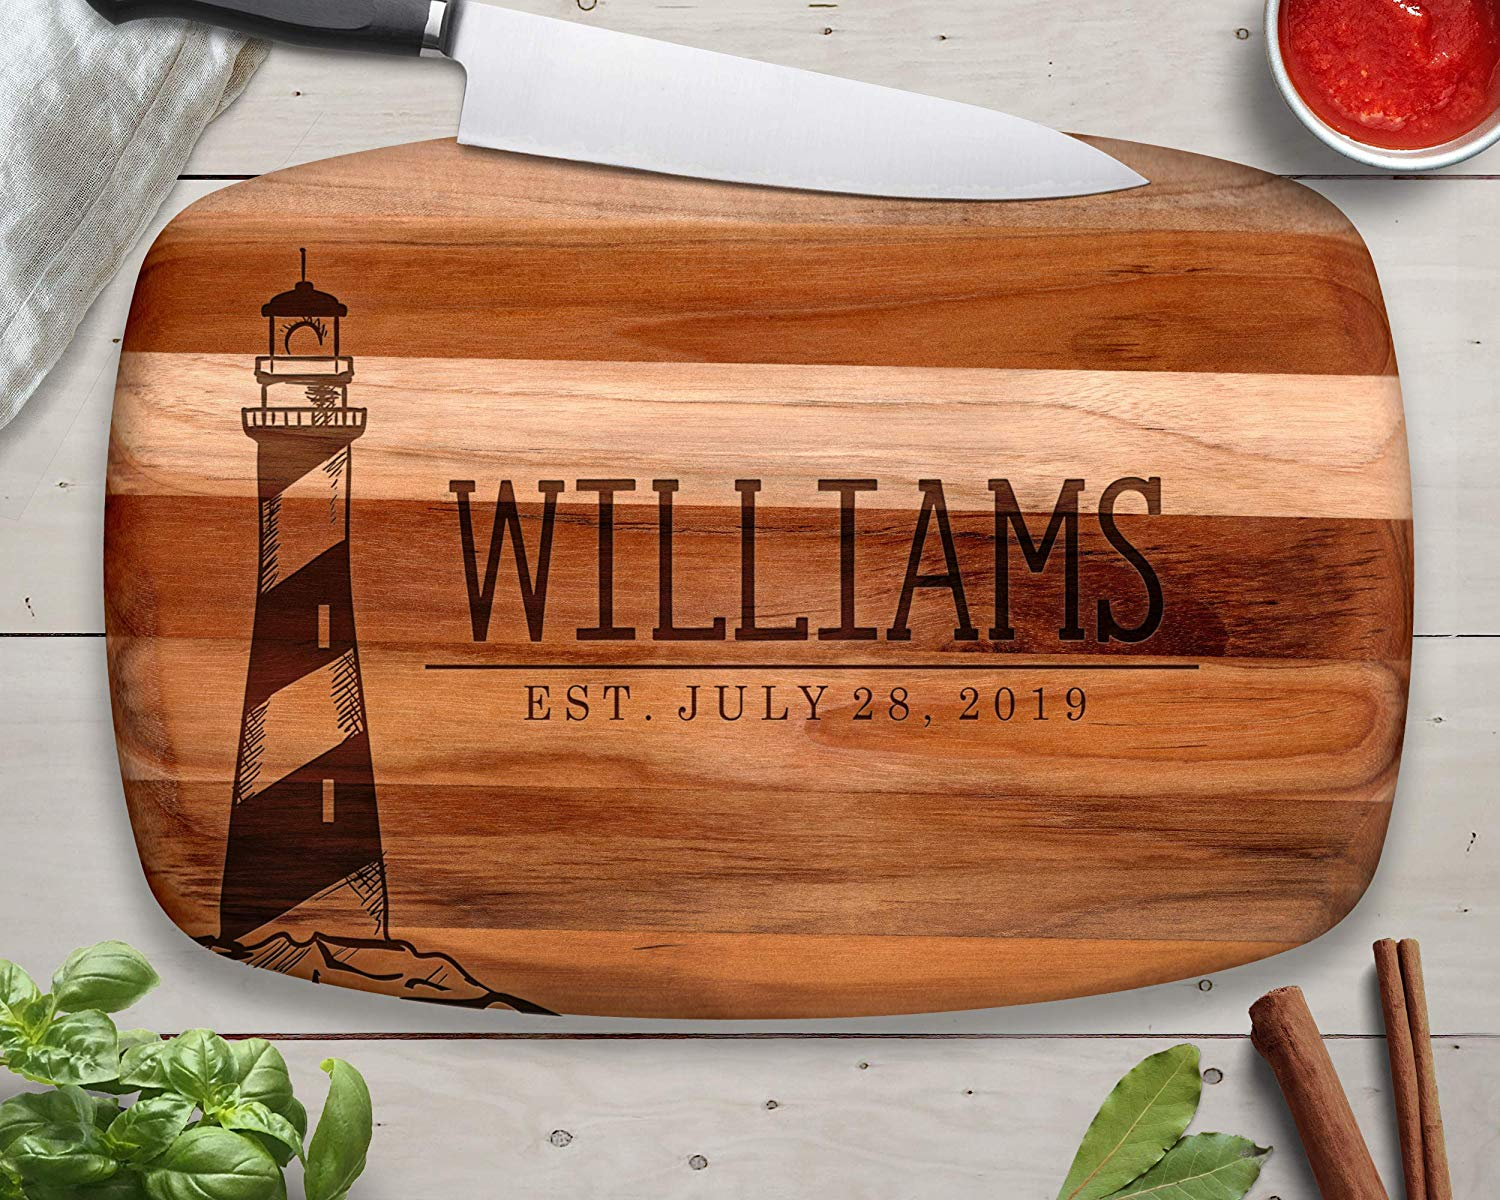 Lighthouse Teak Cutting Board, Custom Cutting Board, Wood Cutting Board, Teak Wood, Cutting Board, Serving Tray, Cheese Board, Bread Board, Wood Serving Tray, Engraved Tray, Personalized Gift